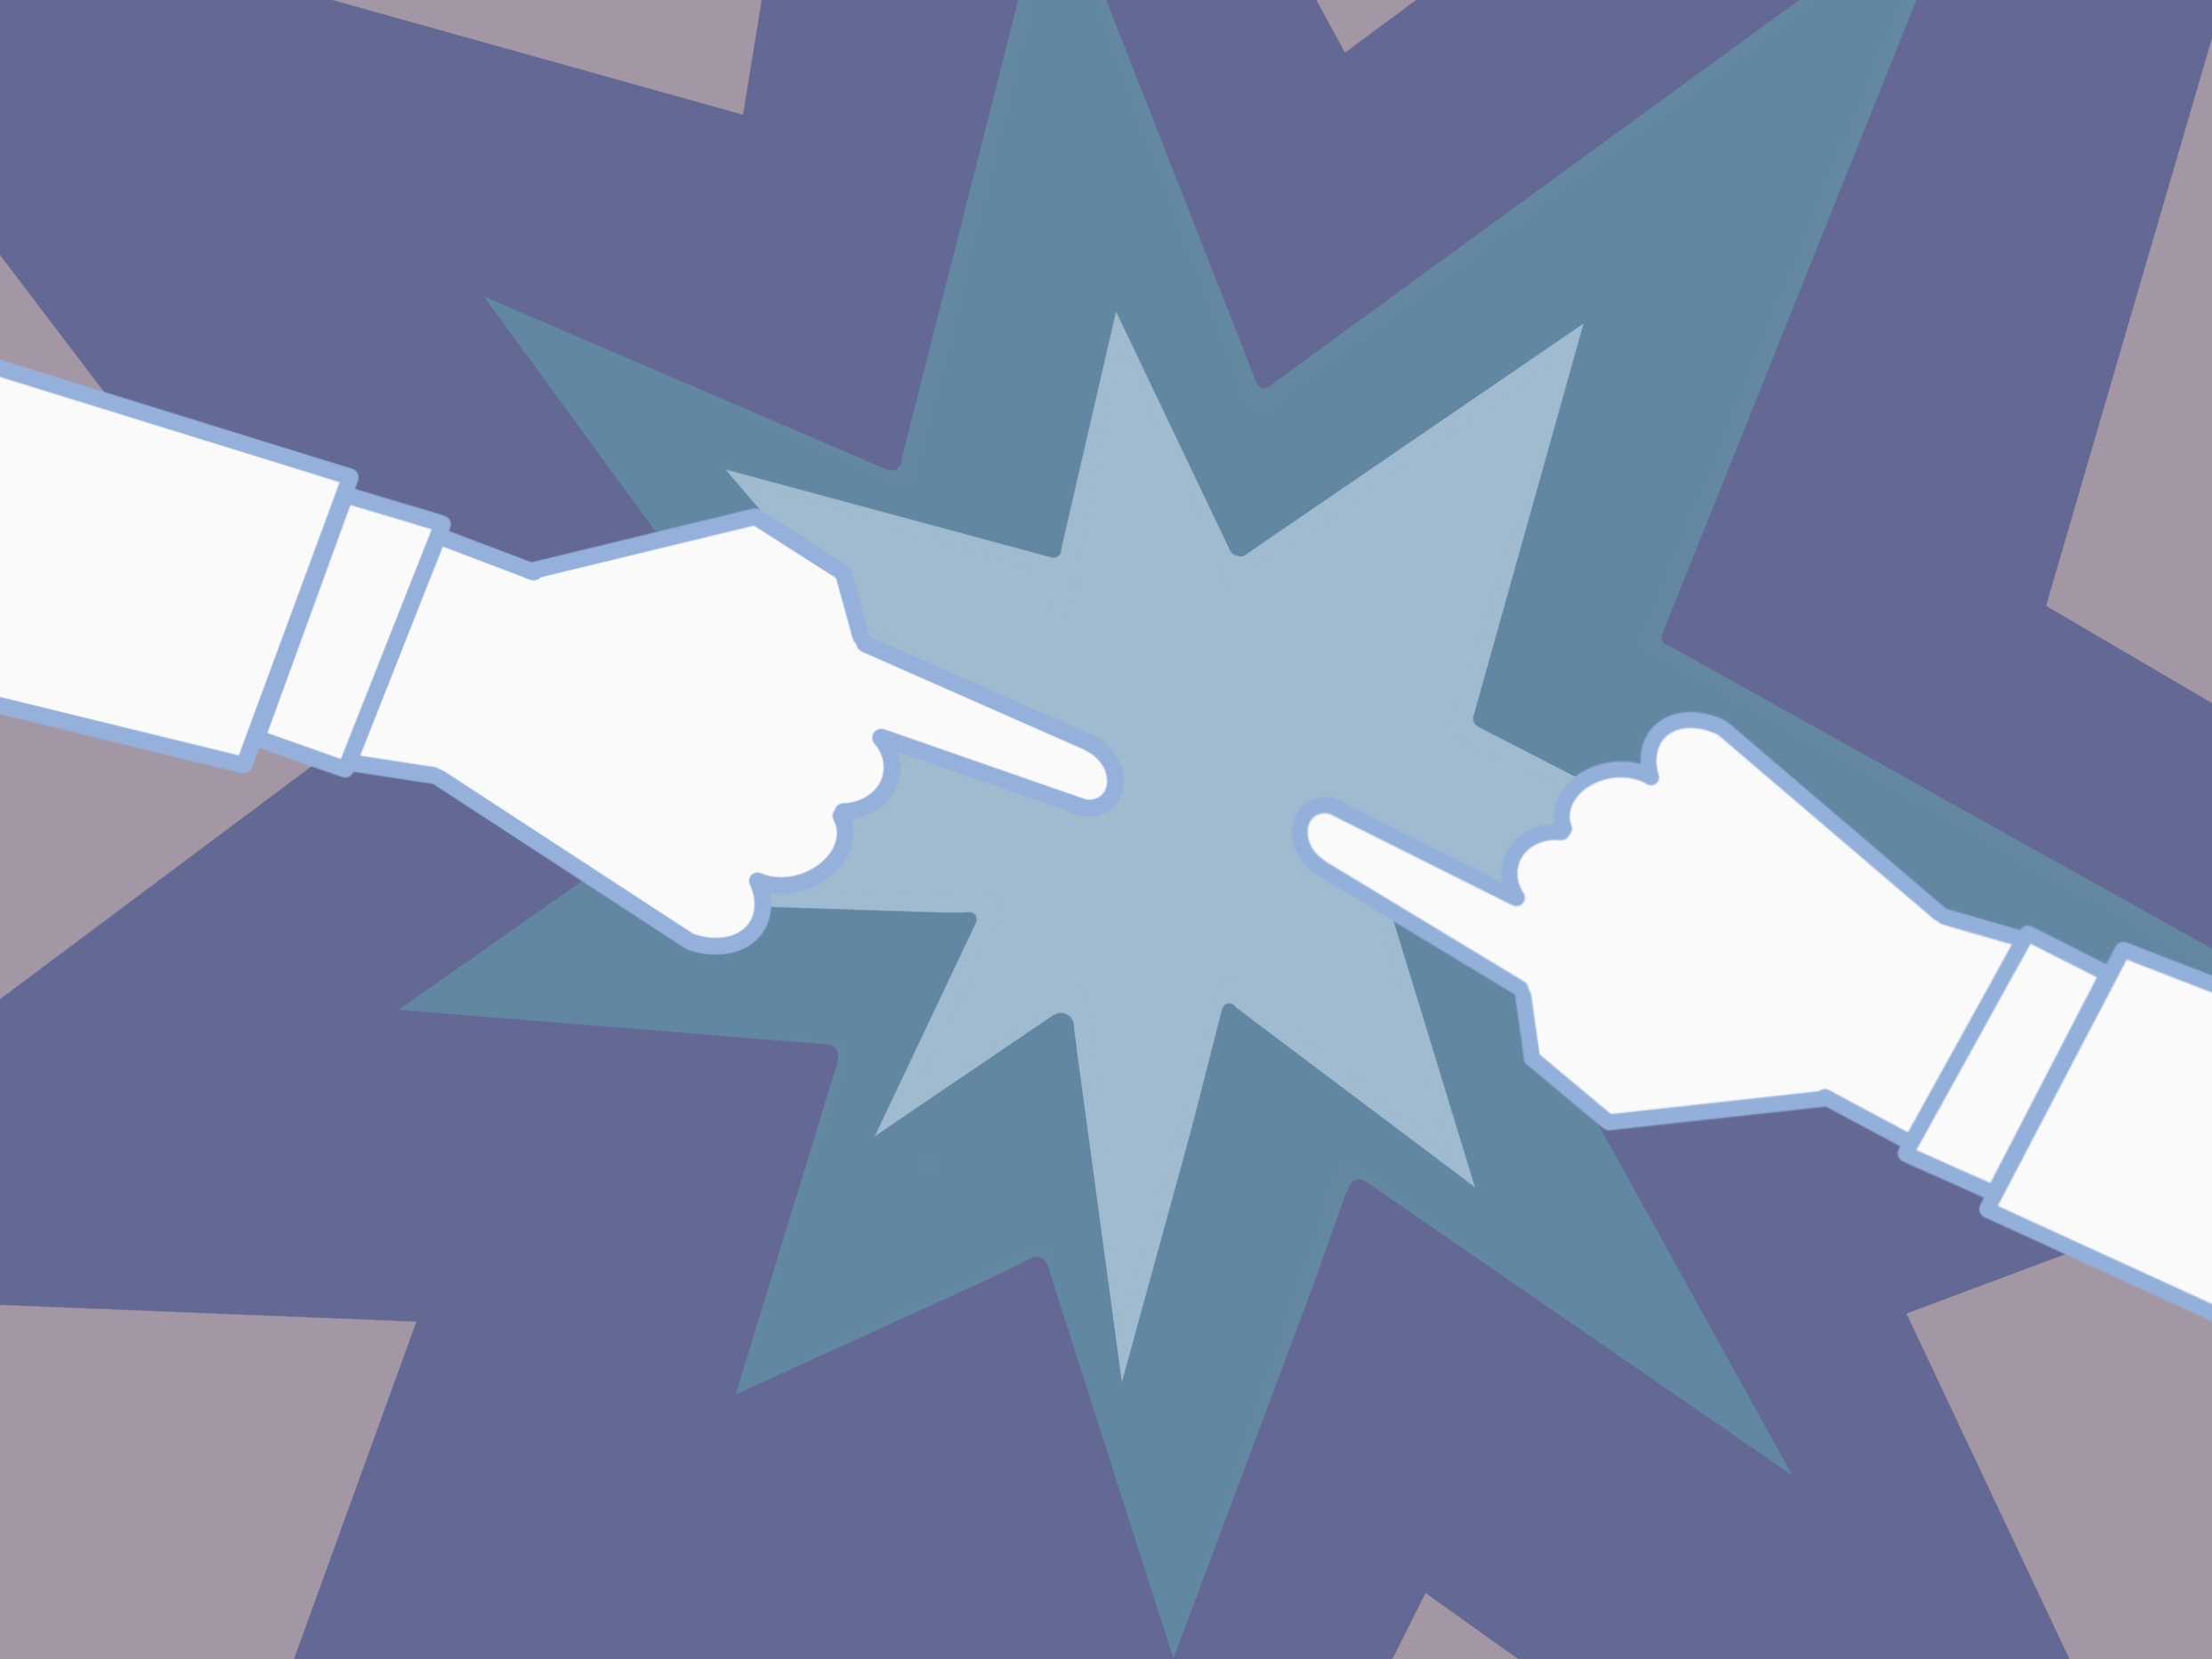 Digital illustration of two hands pointing at each other with a starburst in the background